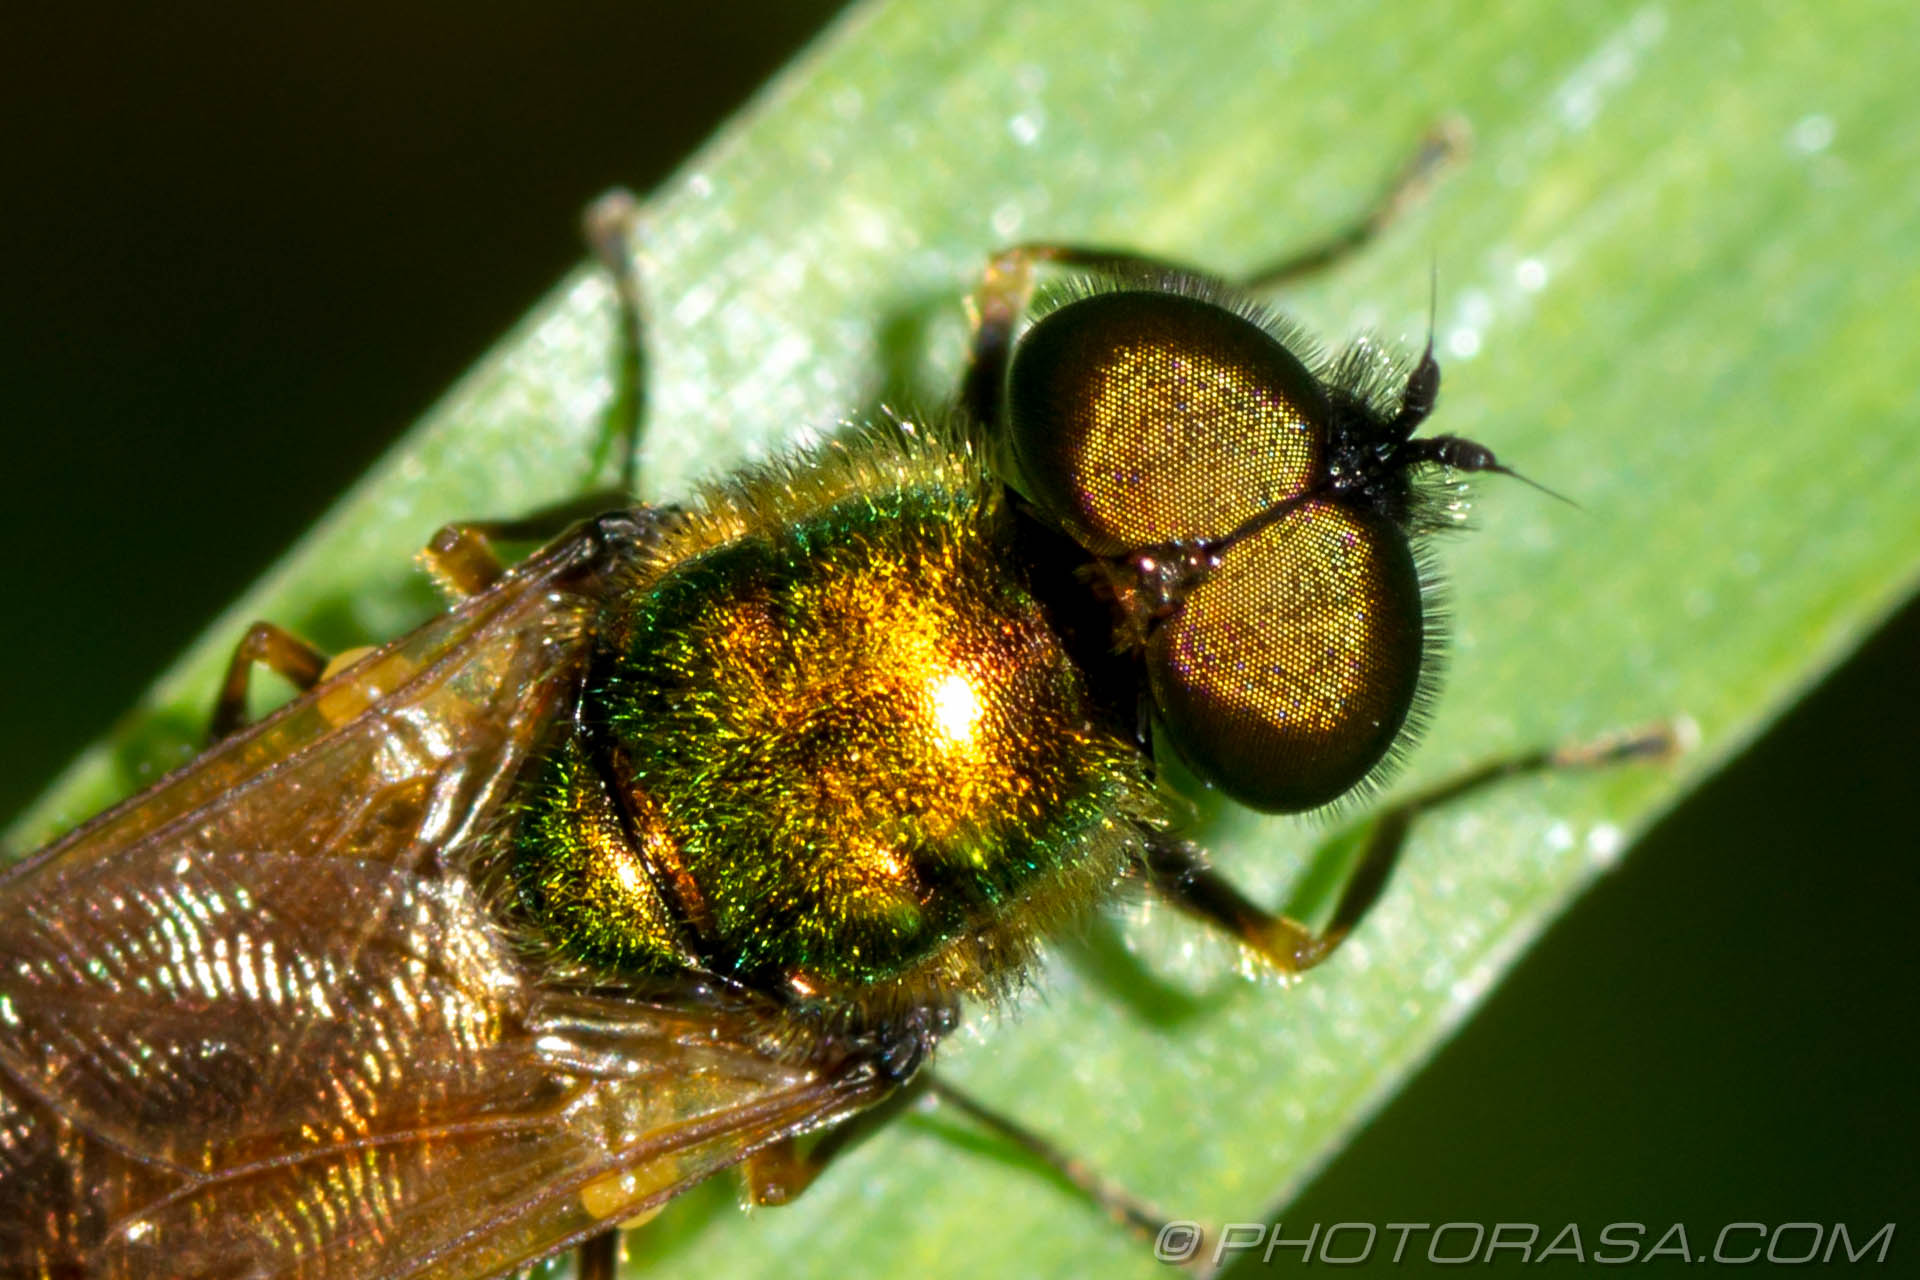 http://photorasa.com/golden-fly/gold-fly-eyes/